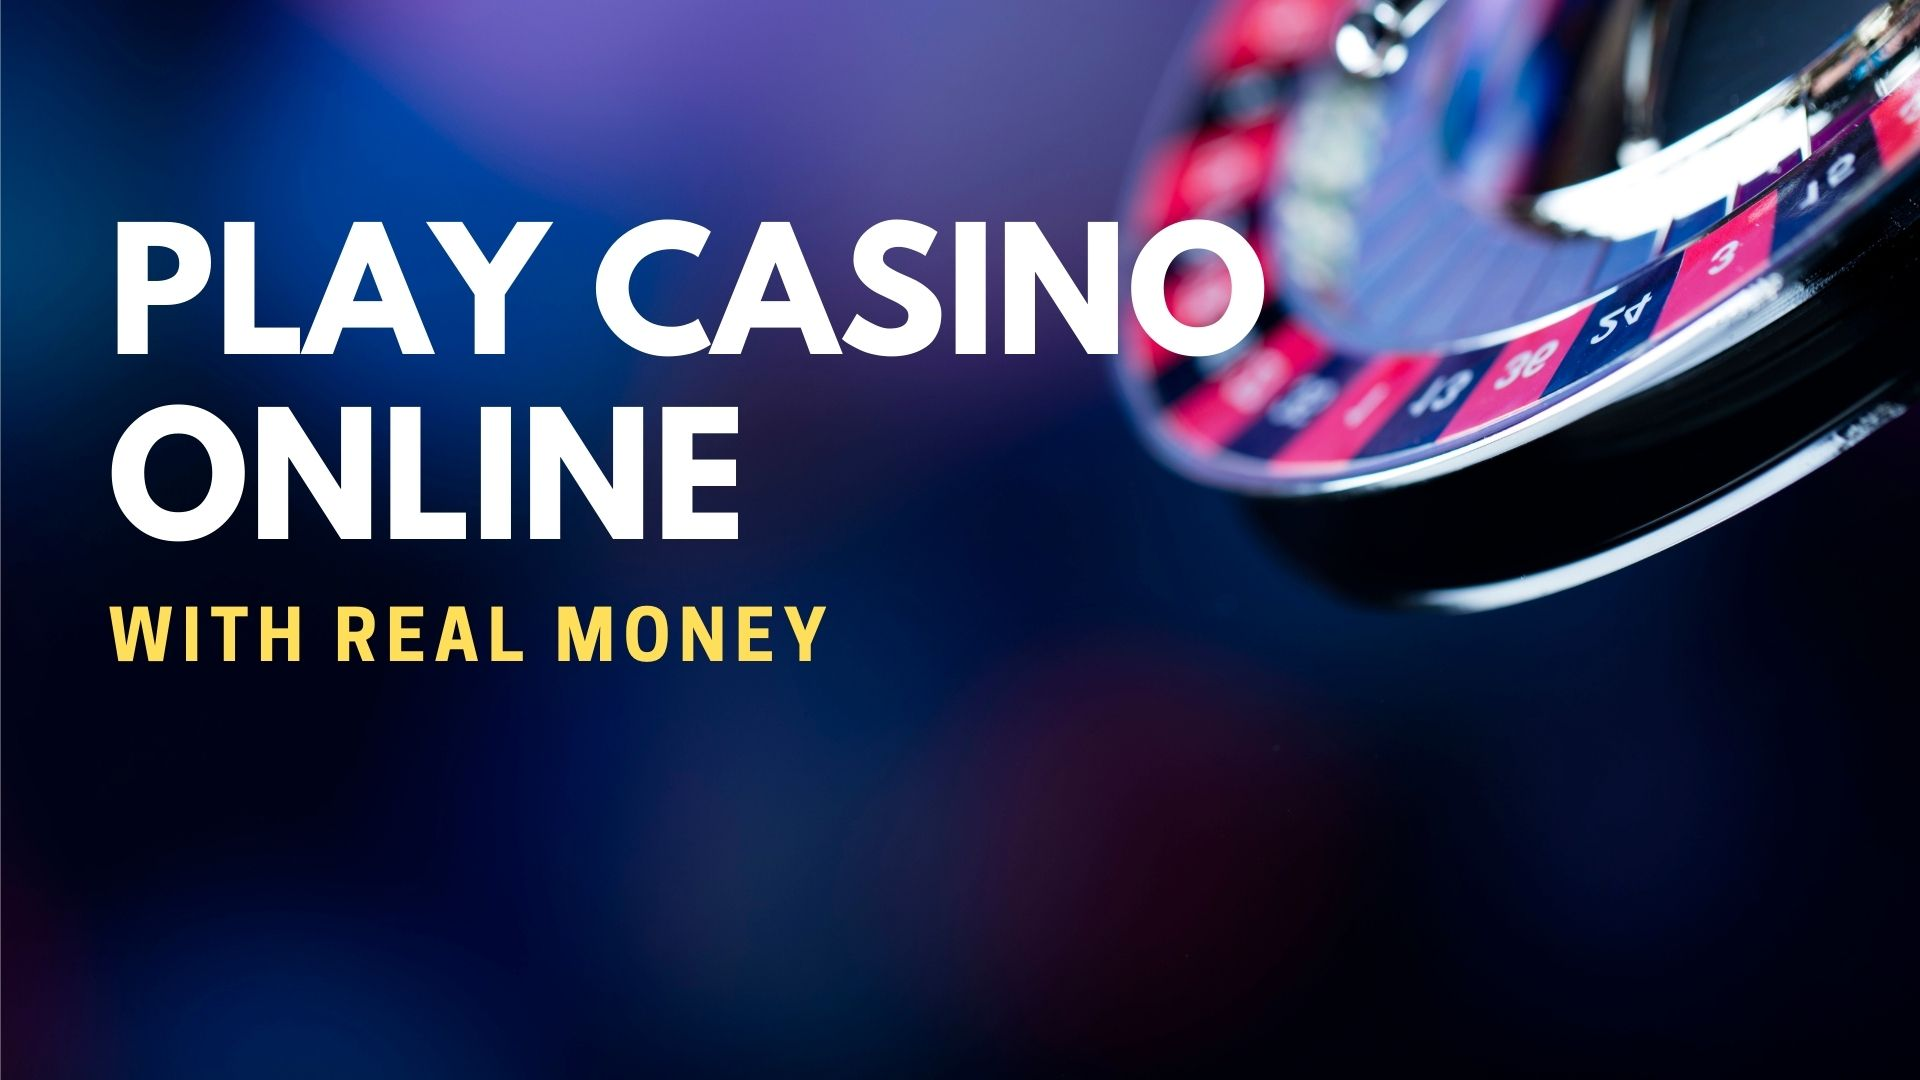 How To Play Casino Online With Real Money Best Tips